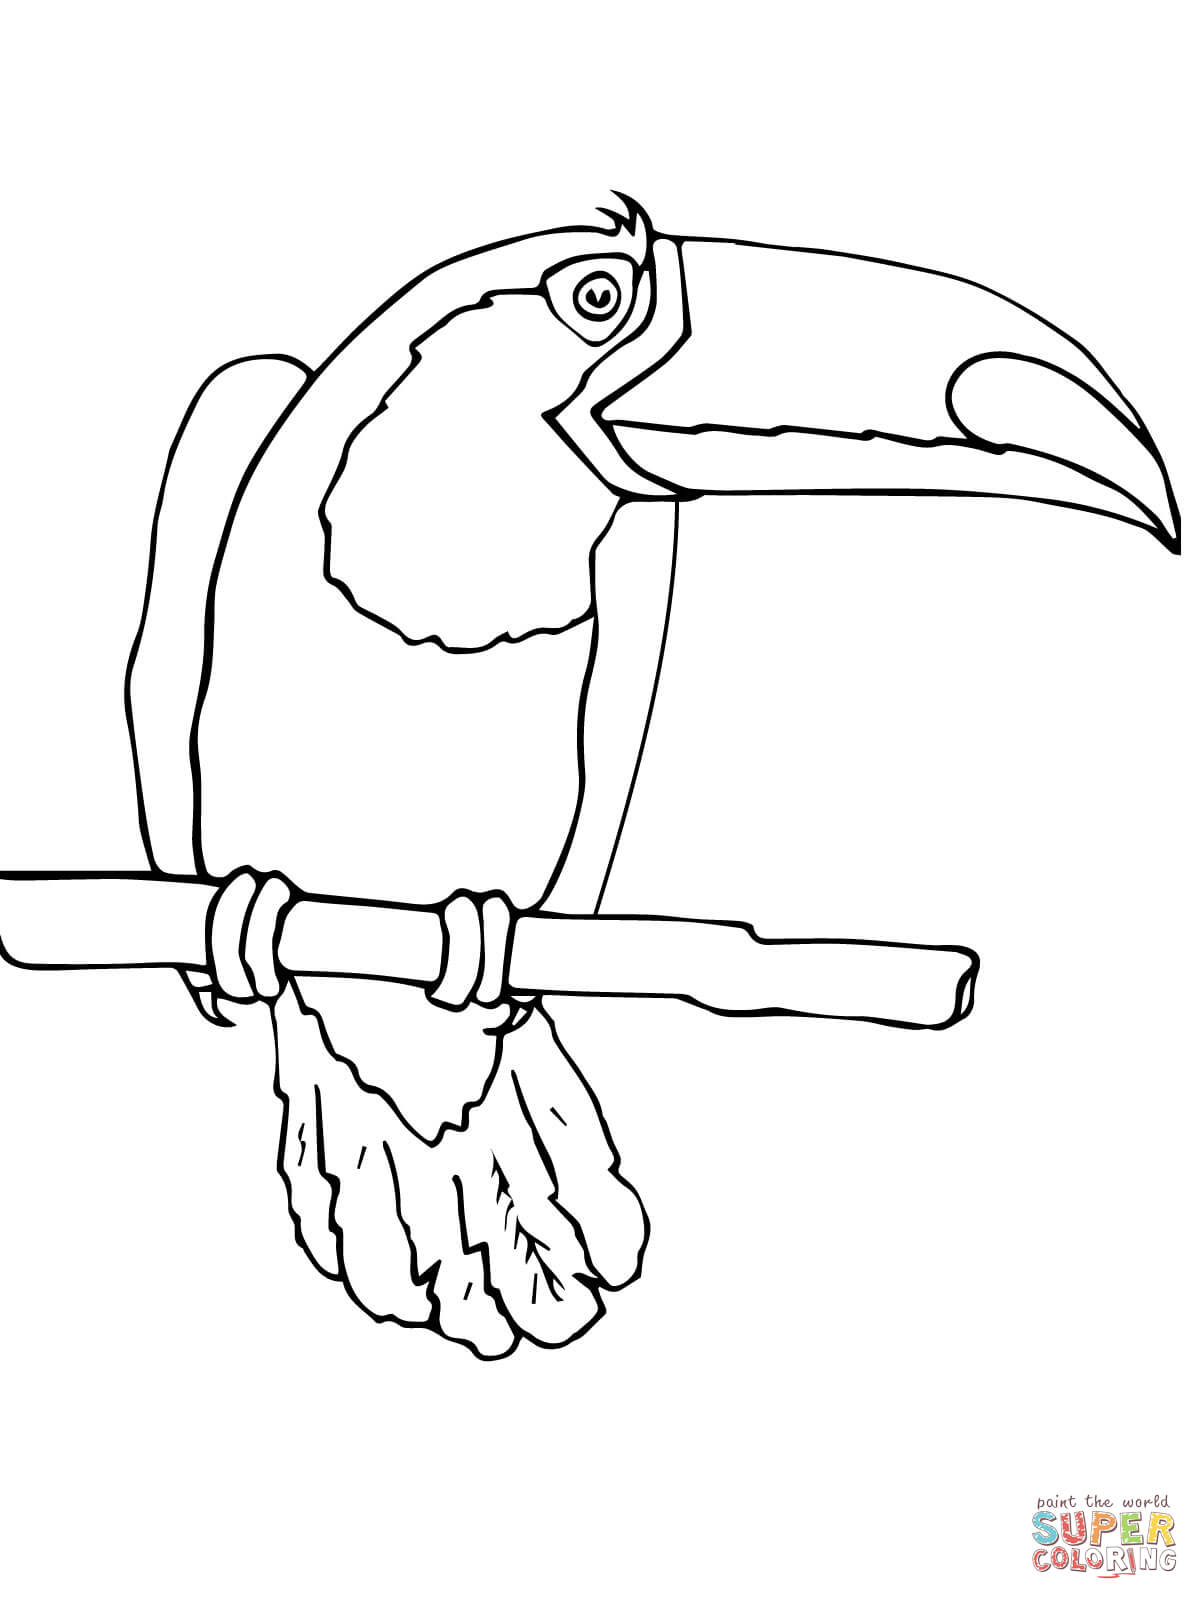 Toucan Coloring Page - Coloring Home